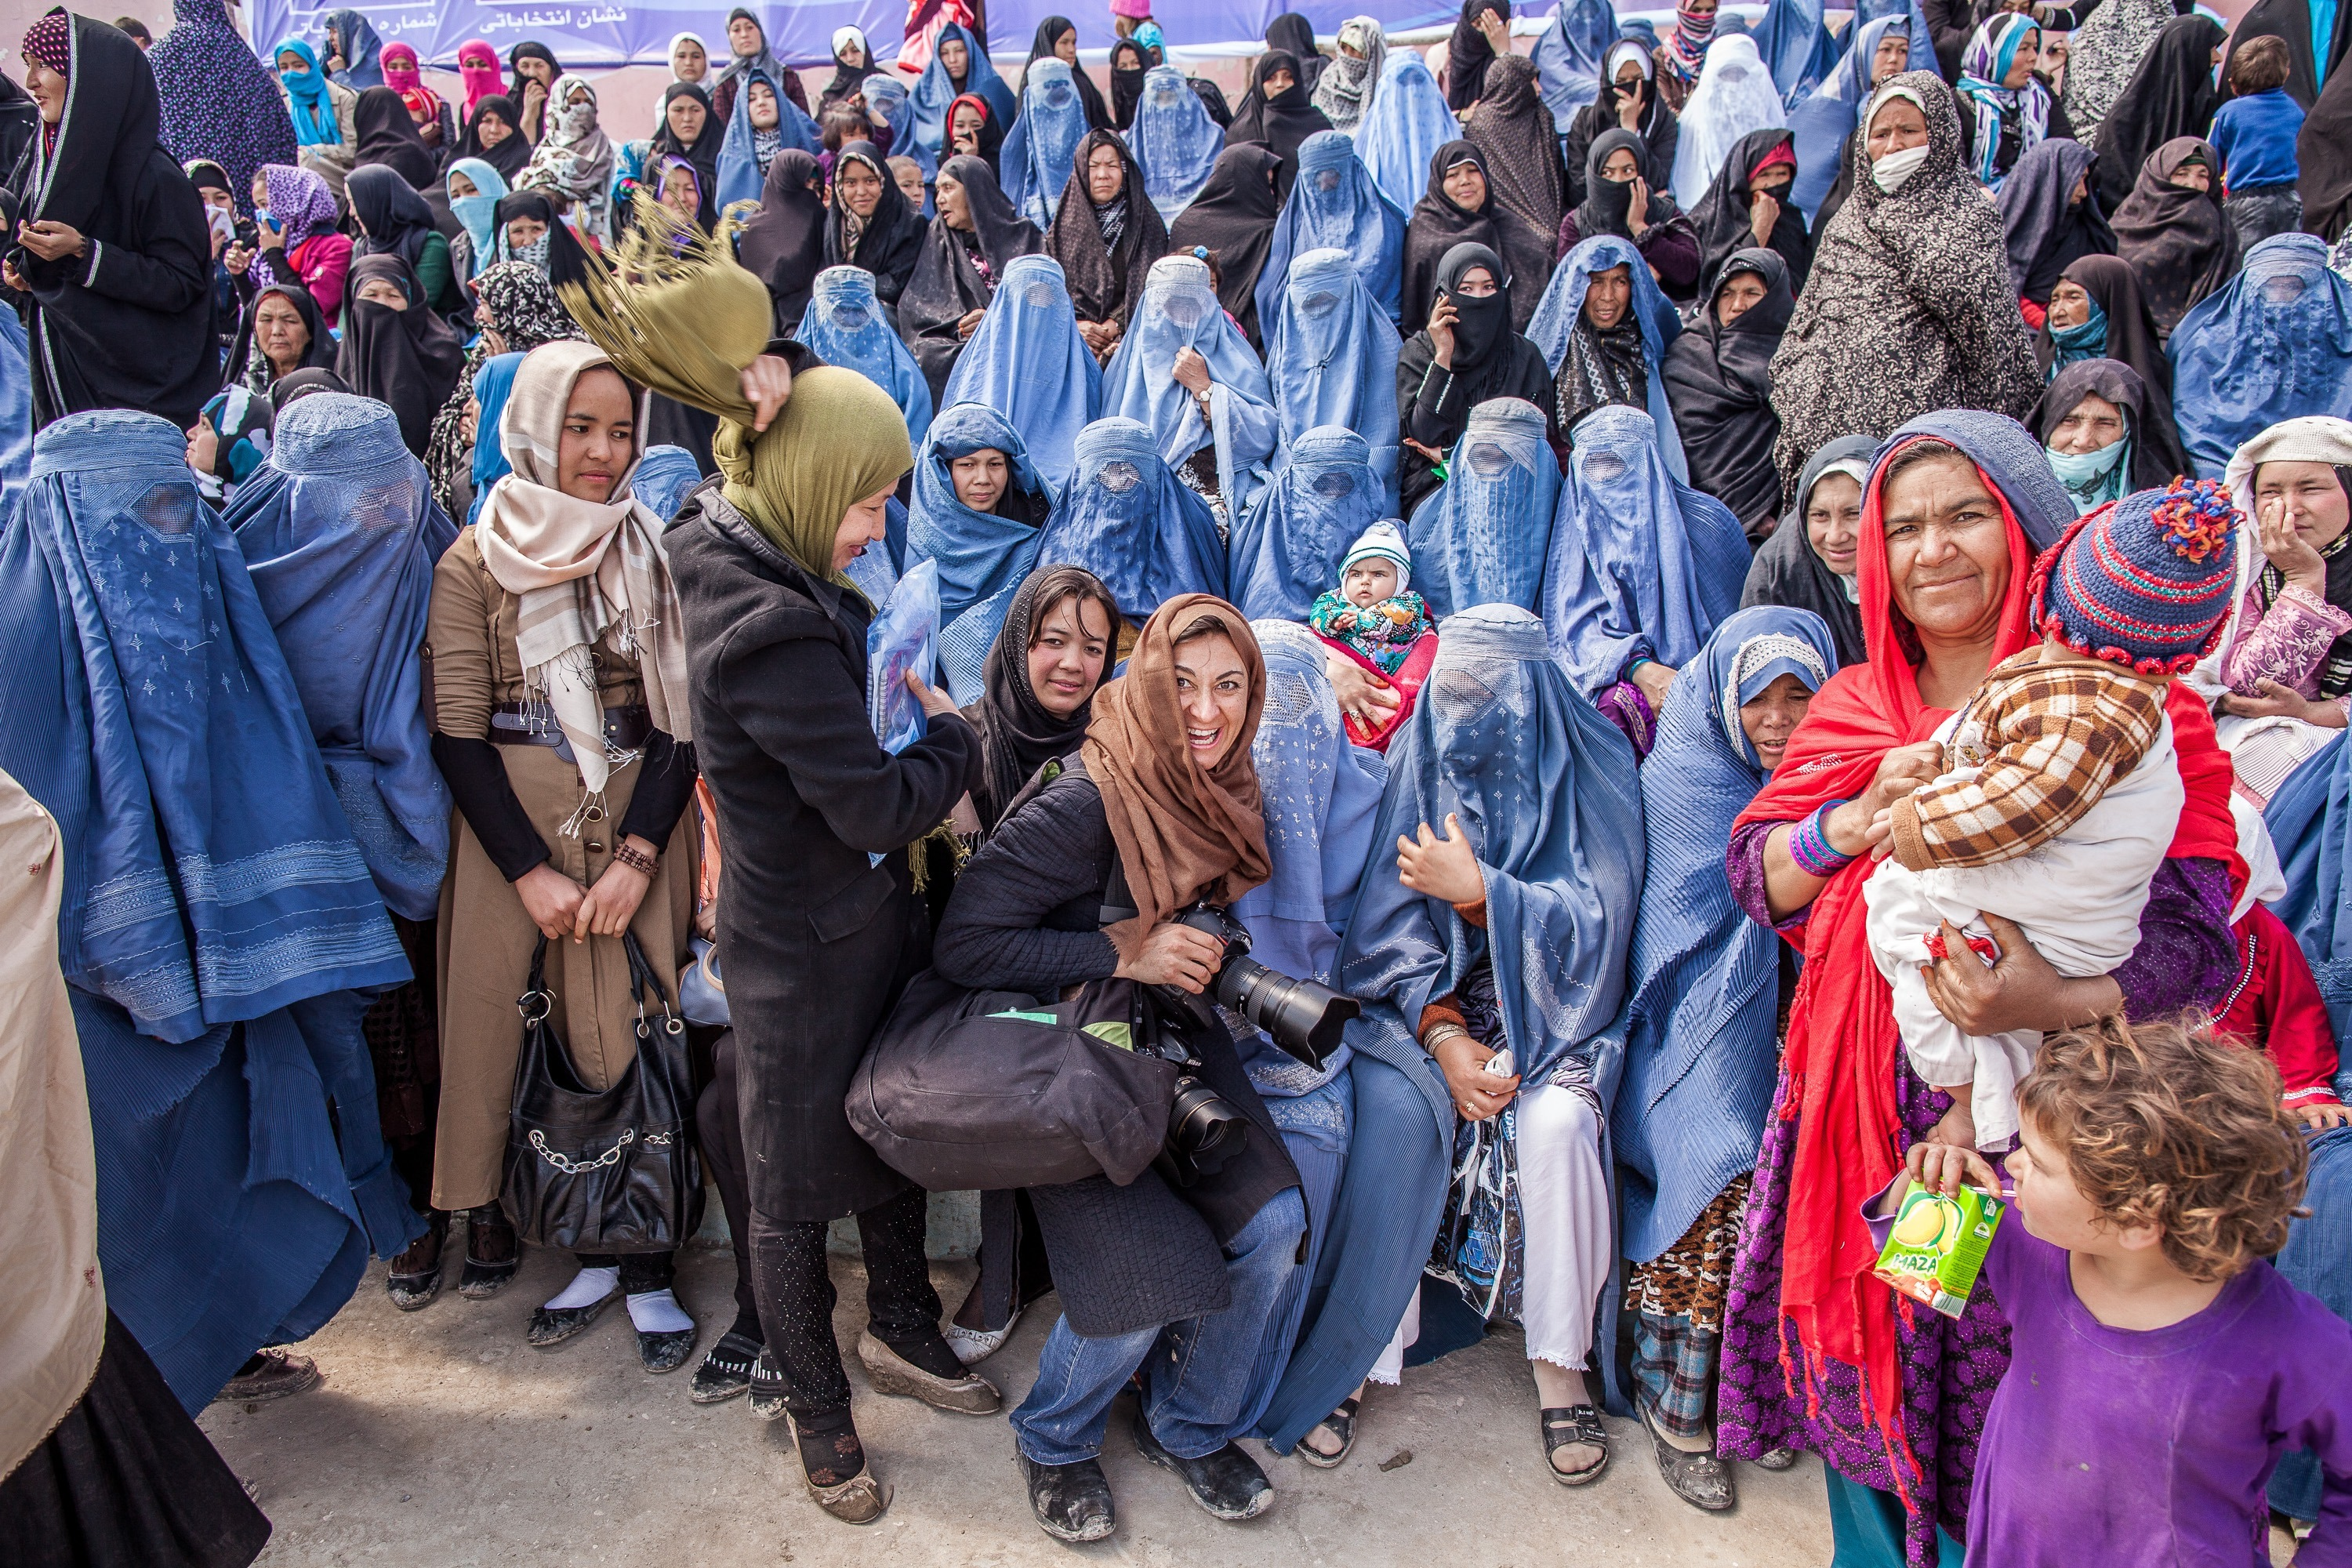 Lynsey Addario with Afghan women attending a rally for Presidential candidate Zalmai Rassoul with Vice Presidential candidate Habiba Sarabi, in Mazar-e-Sharif, Afghanistan, March 27, 2014.